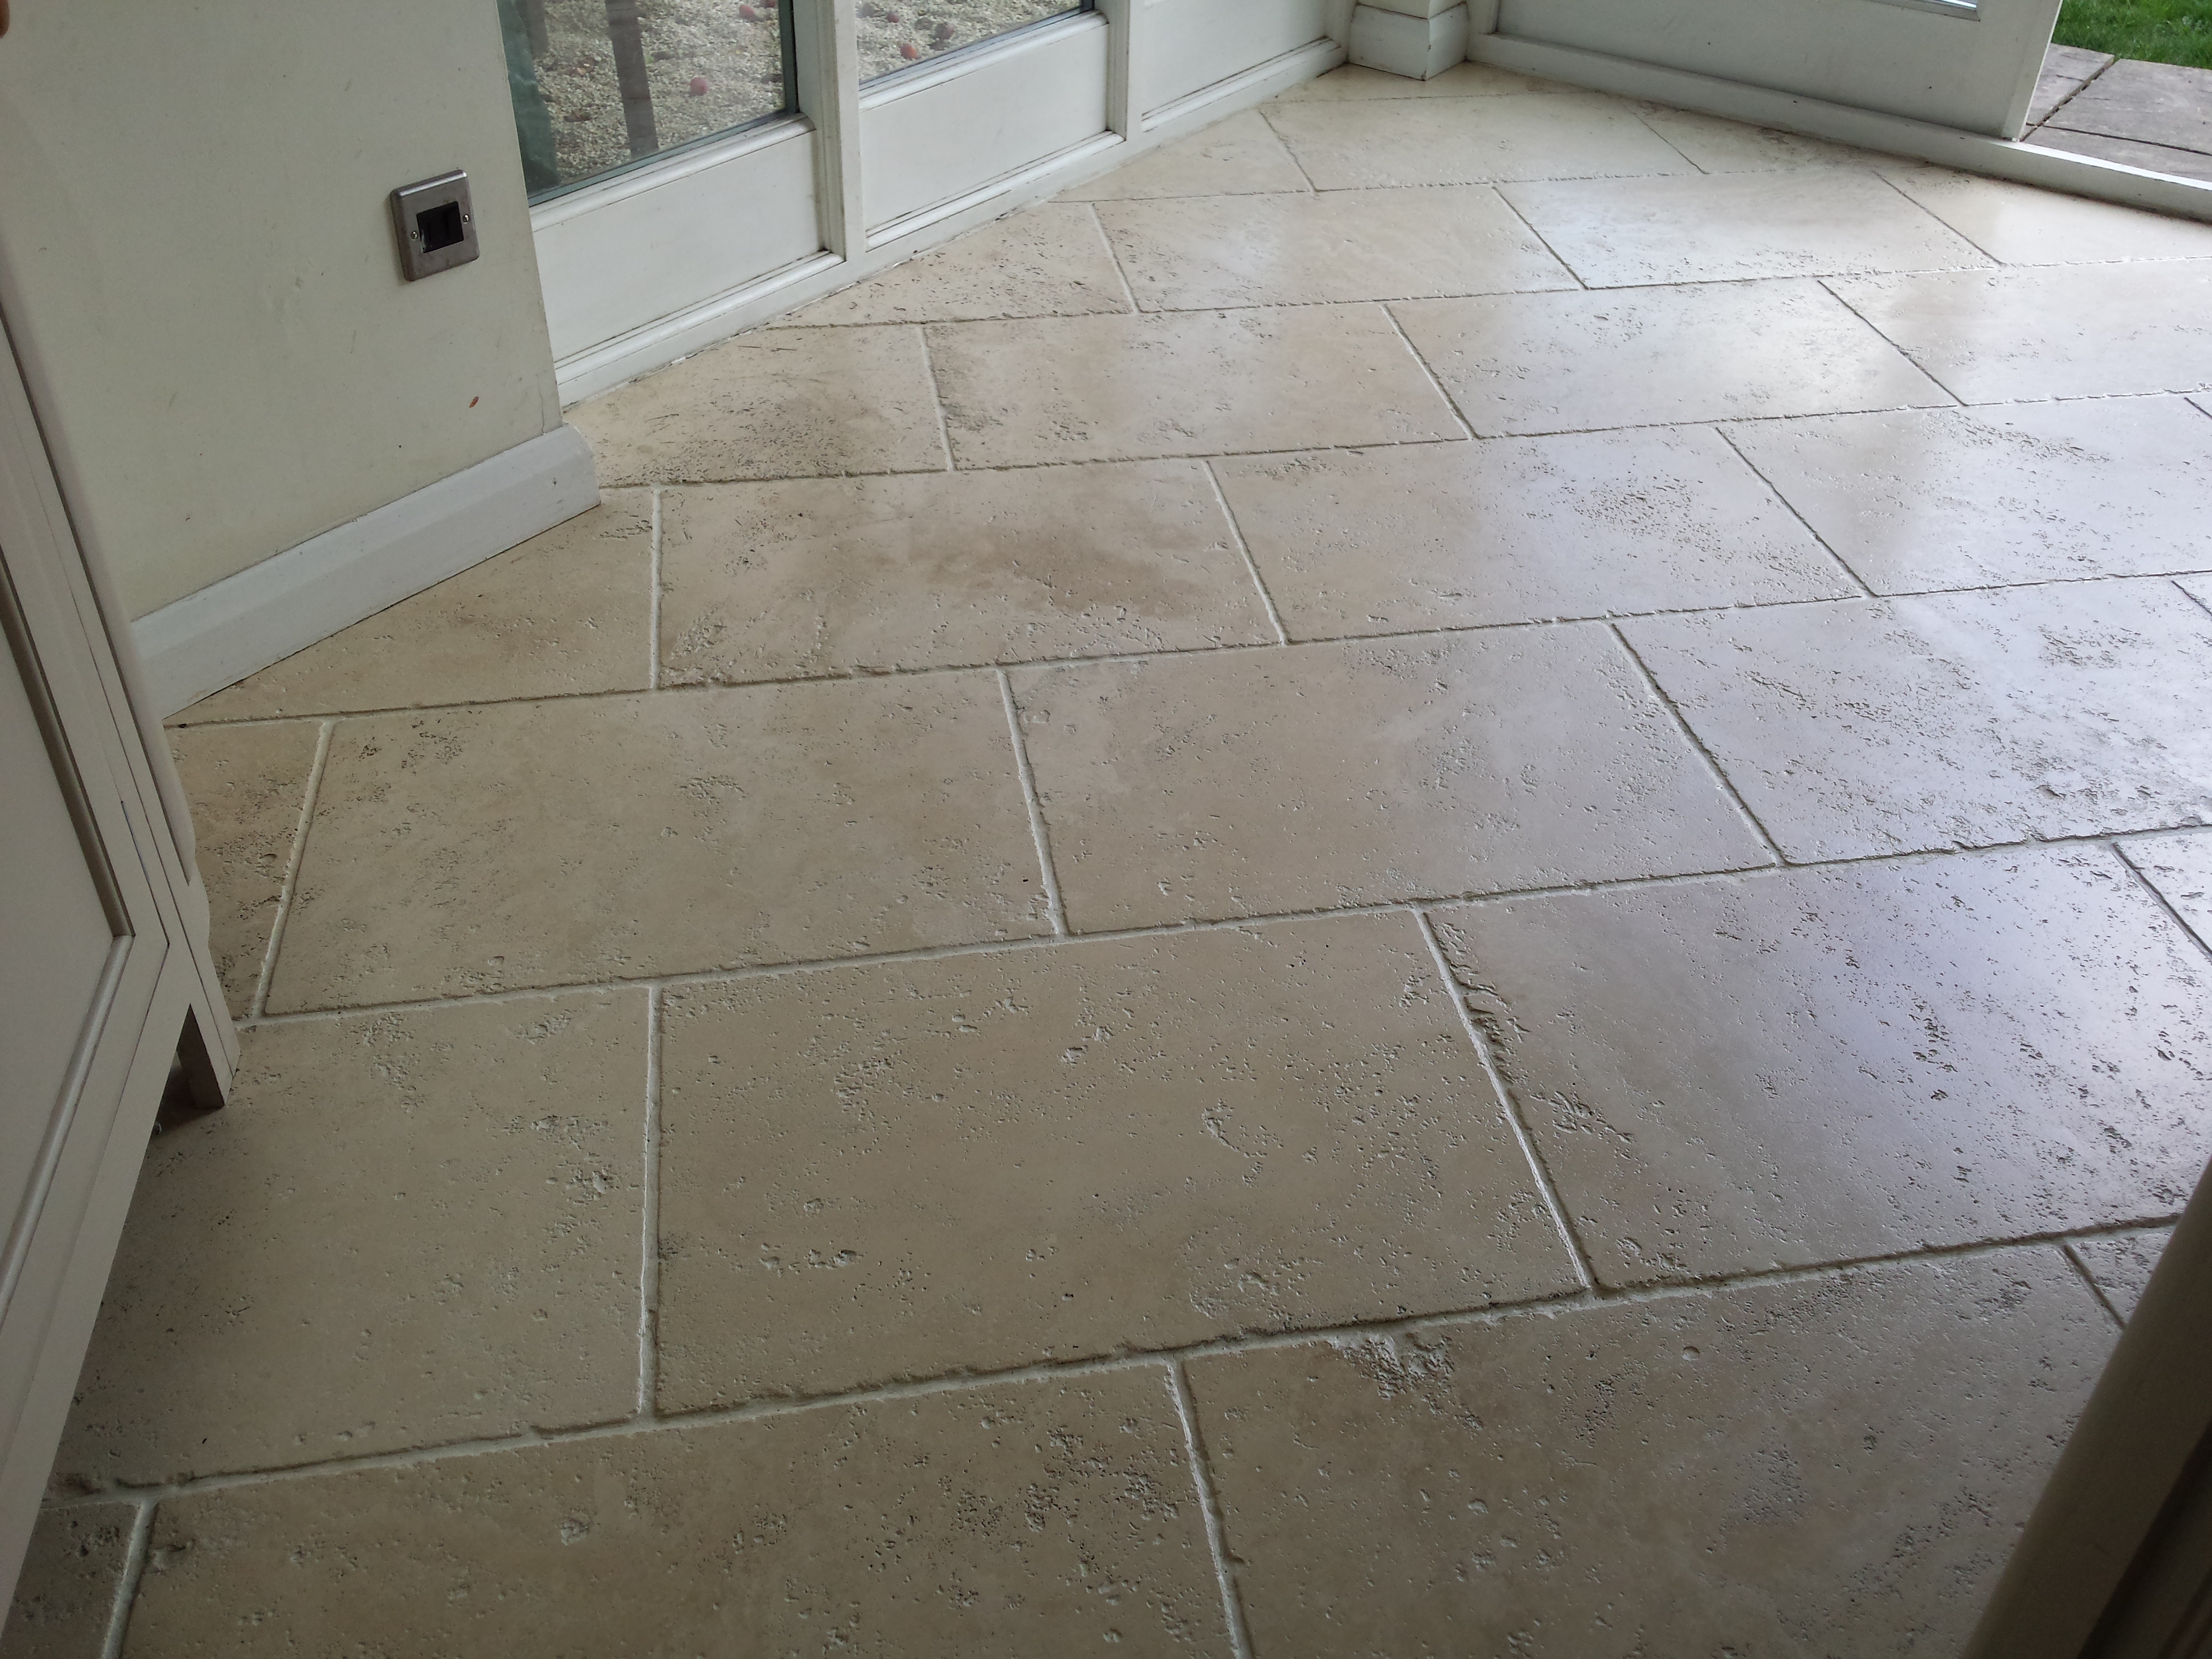 How To Grind Granite Countertops Travertine Floor Cleaning And Polishing Oxfordshire Floor